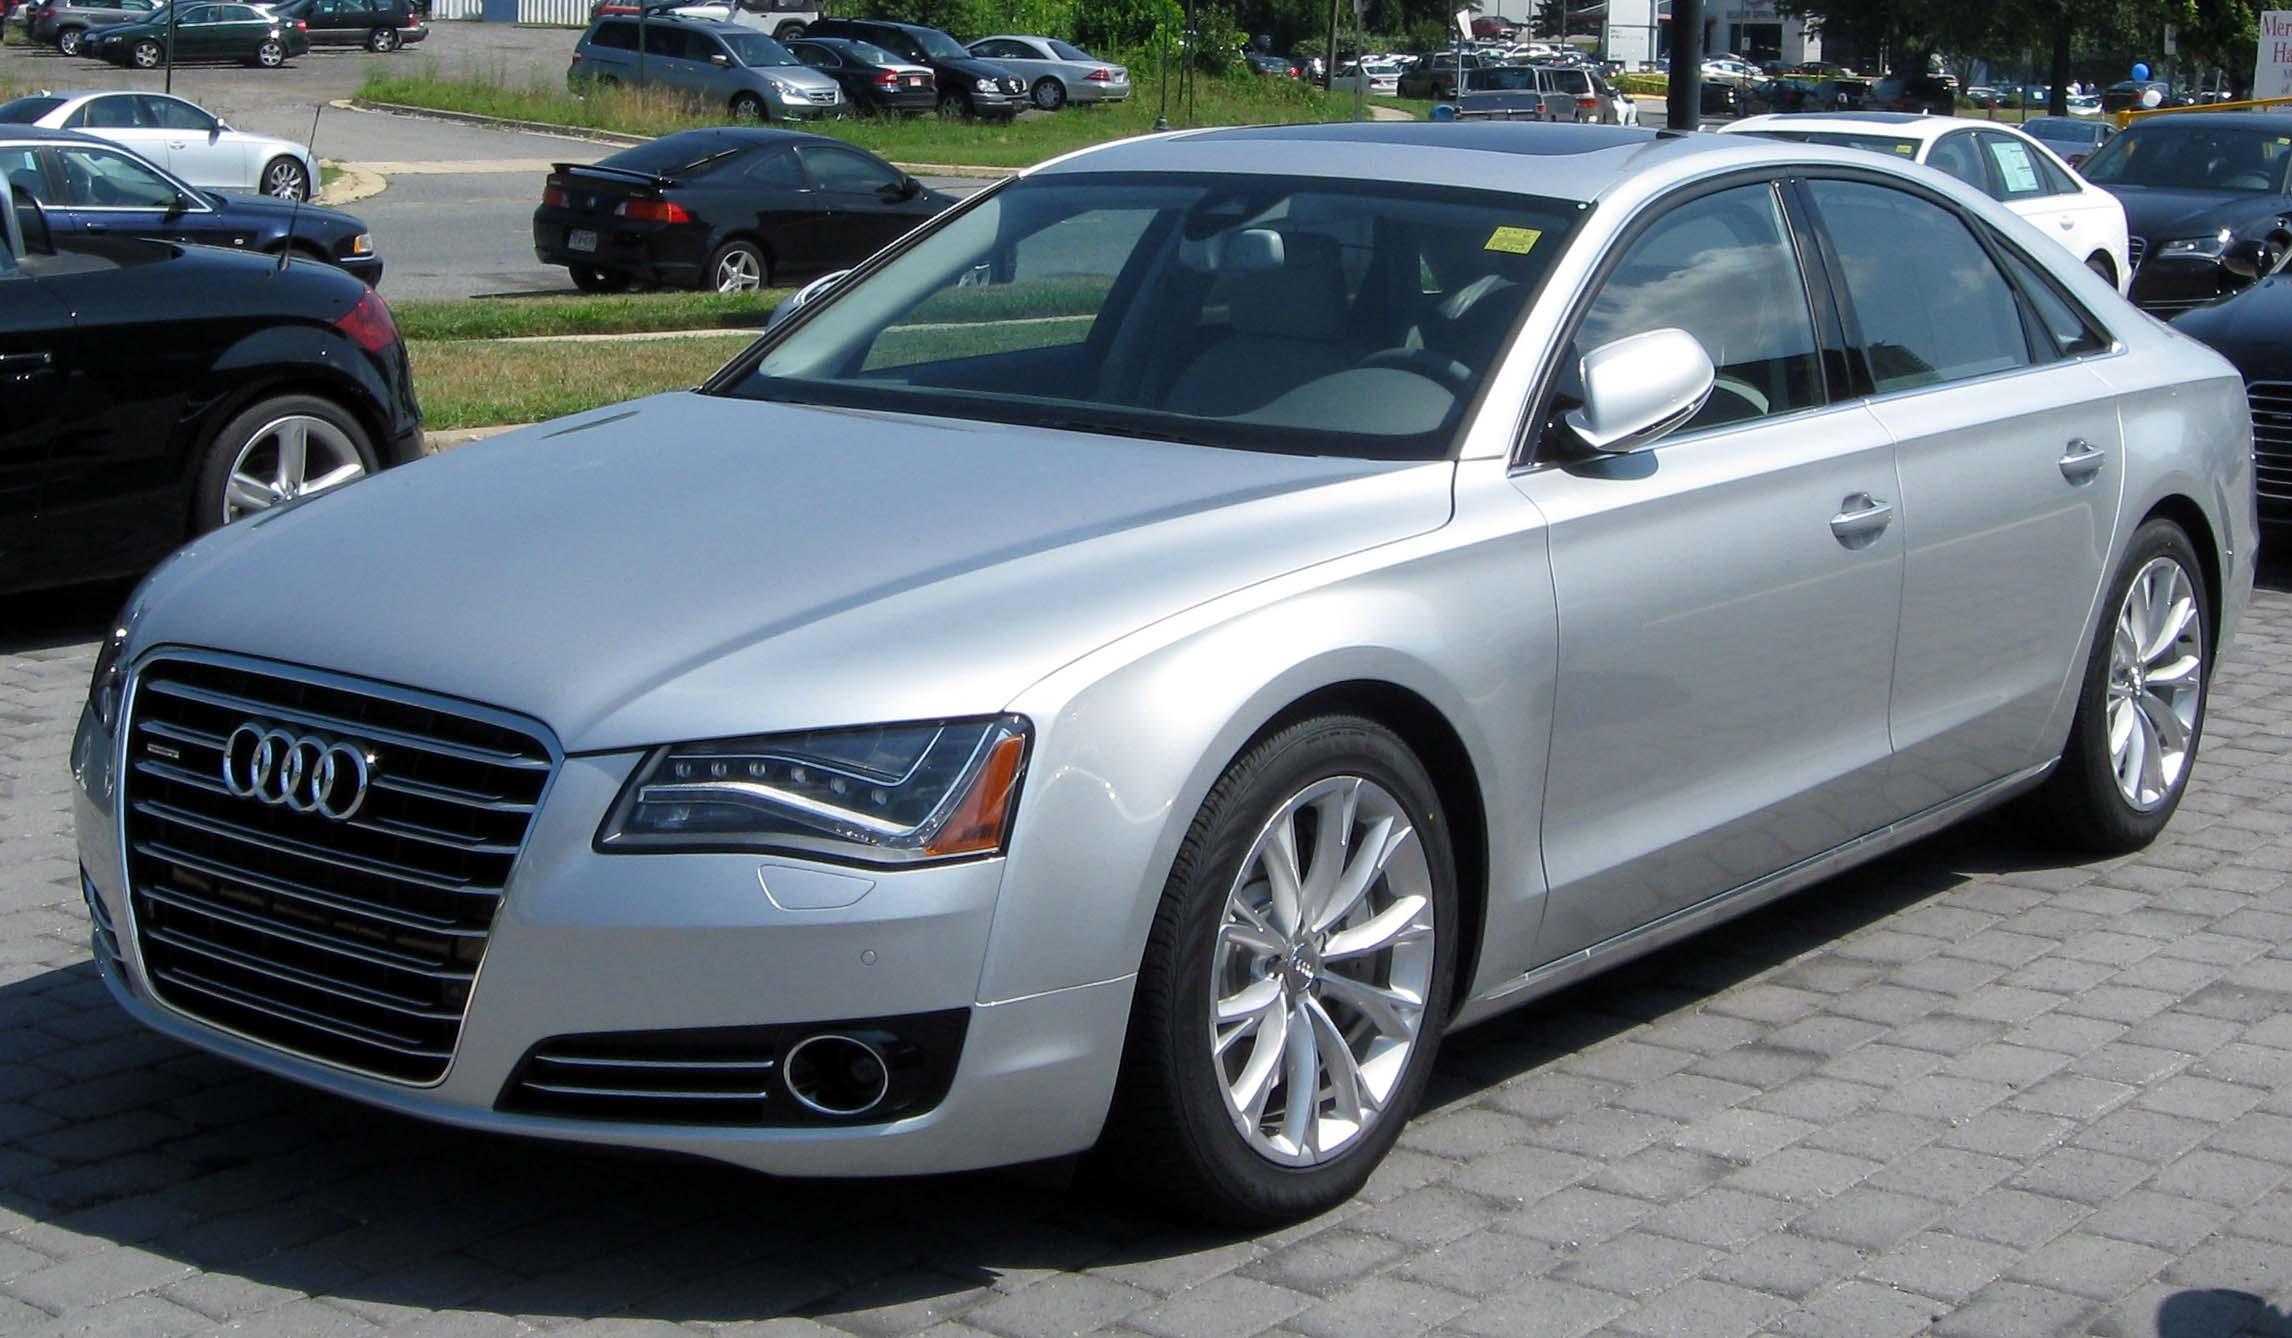 Audi A8 - Wikipedia, the free encyclopedia